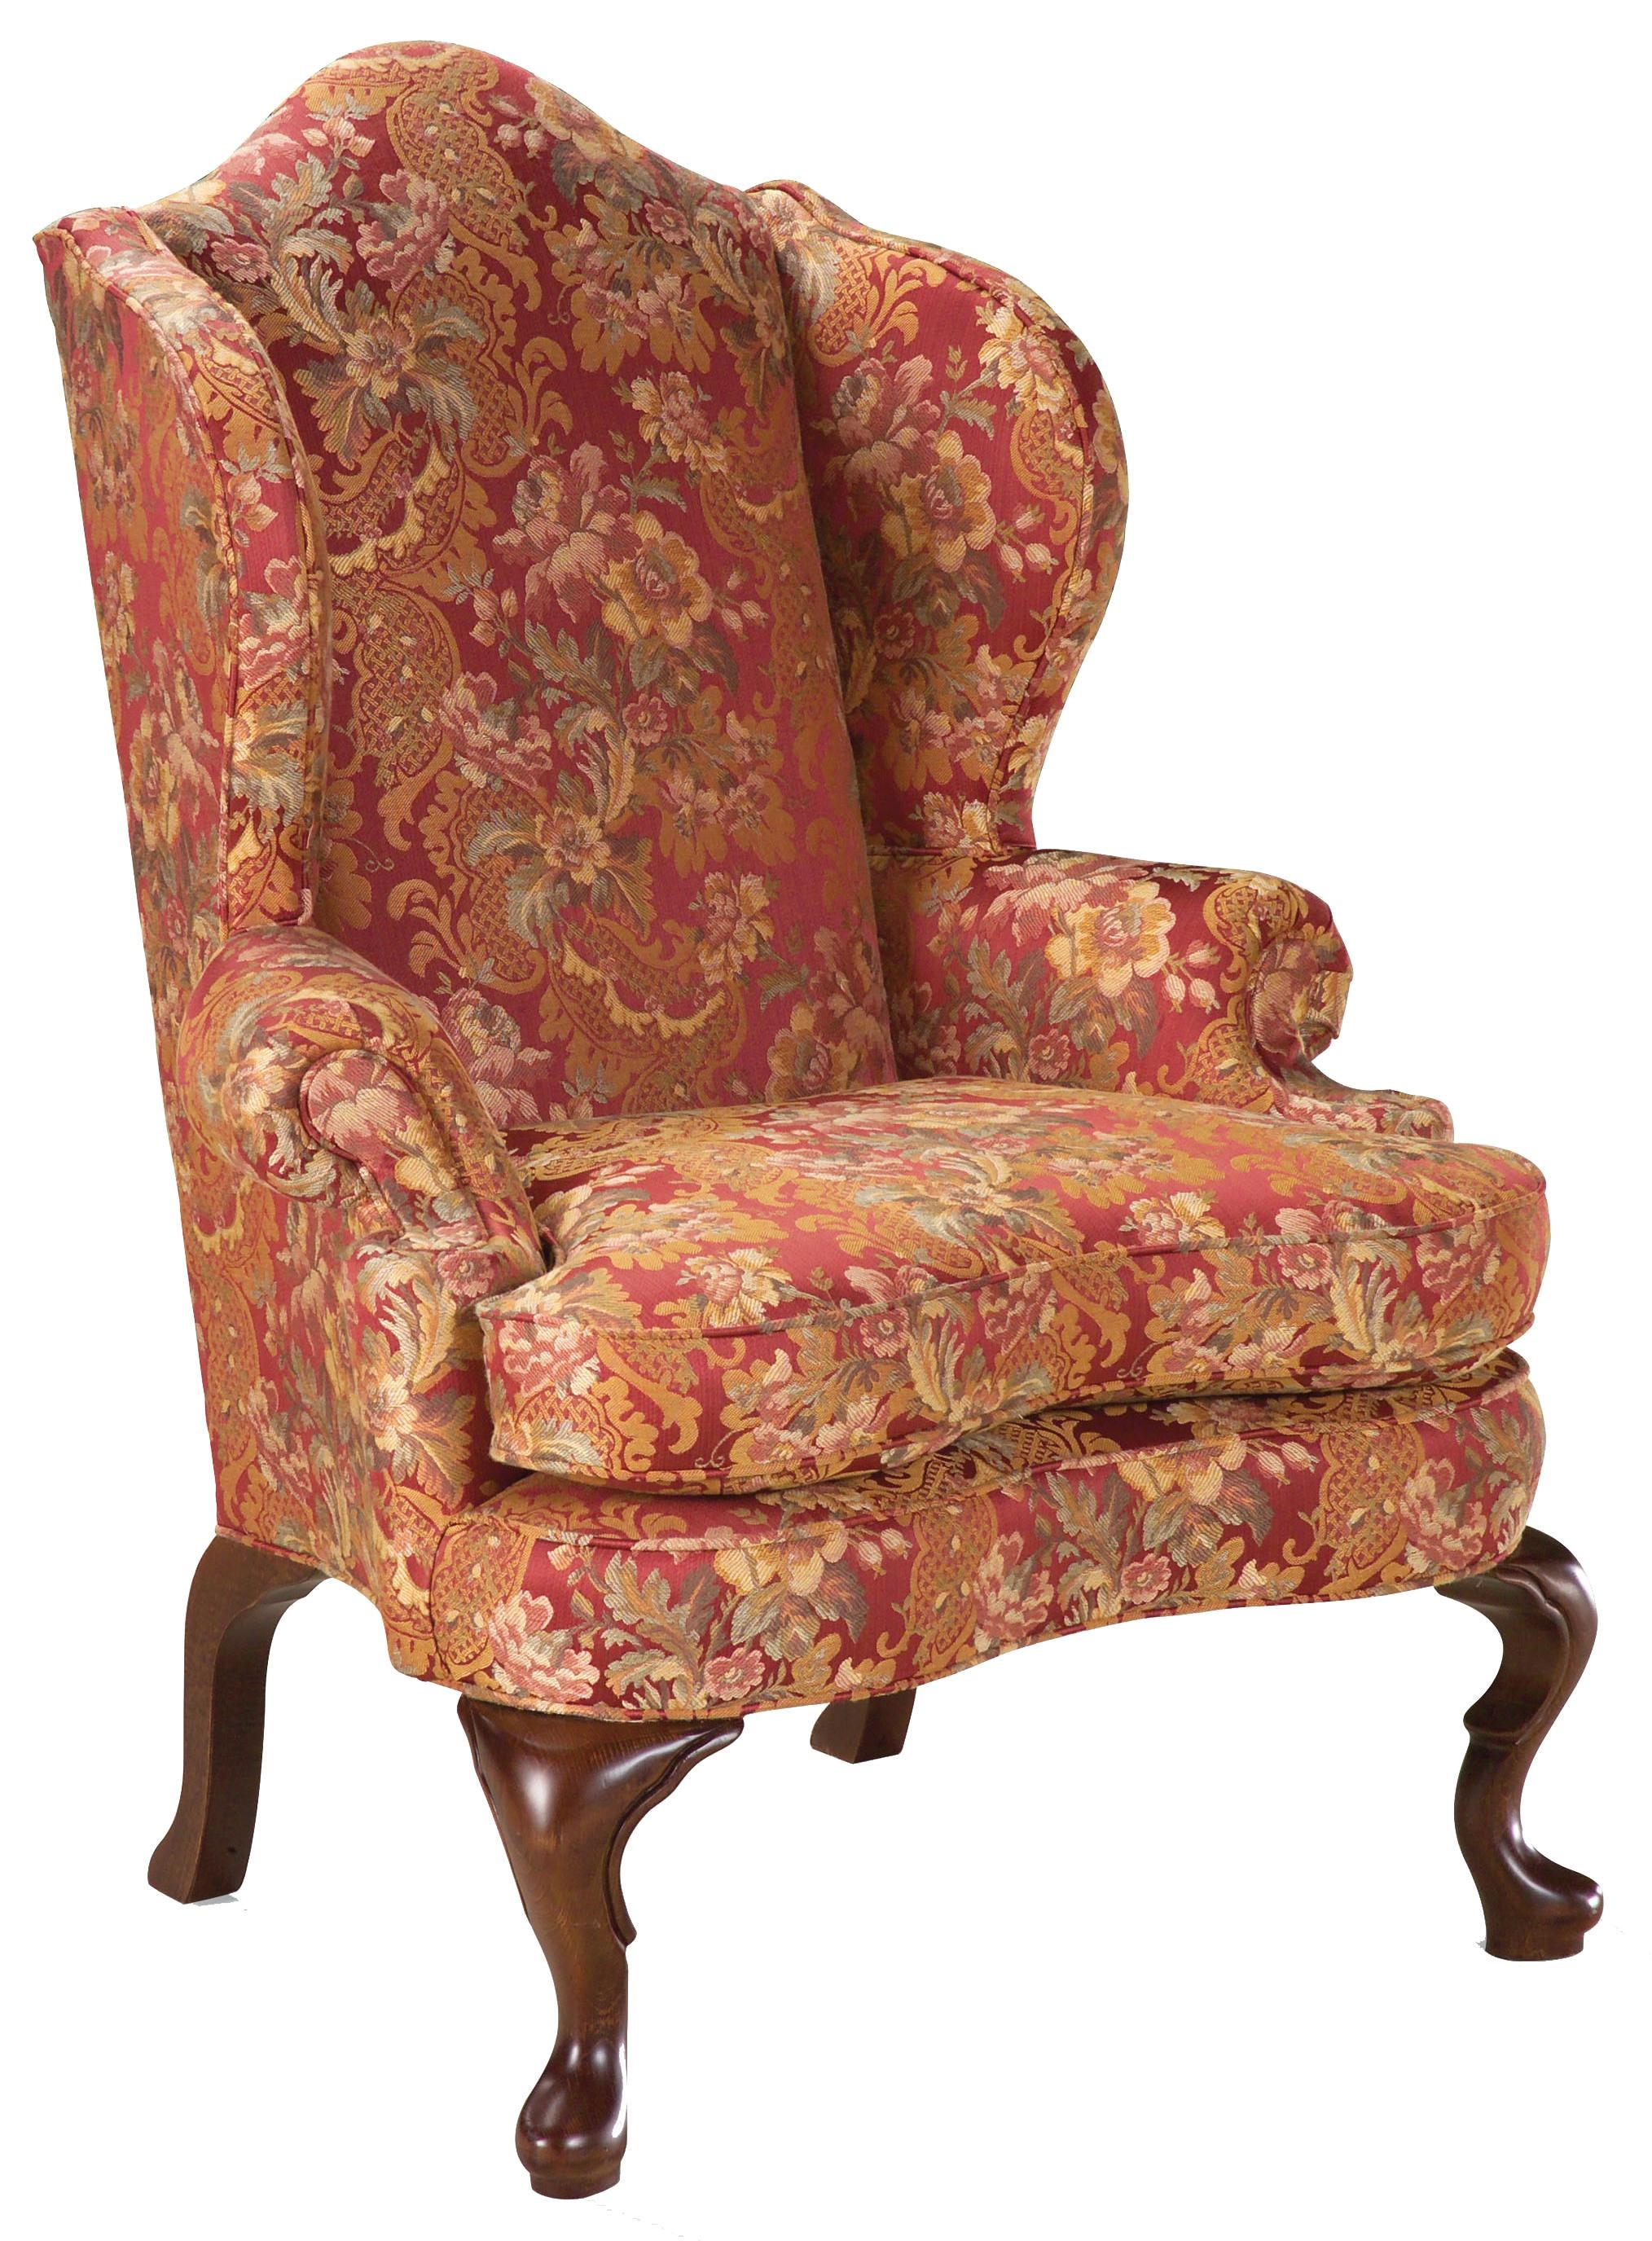 Fairfield Chairs High Back Wing Chair in the Traditional